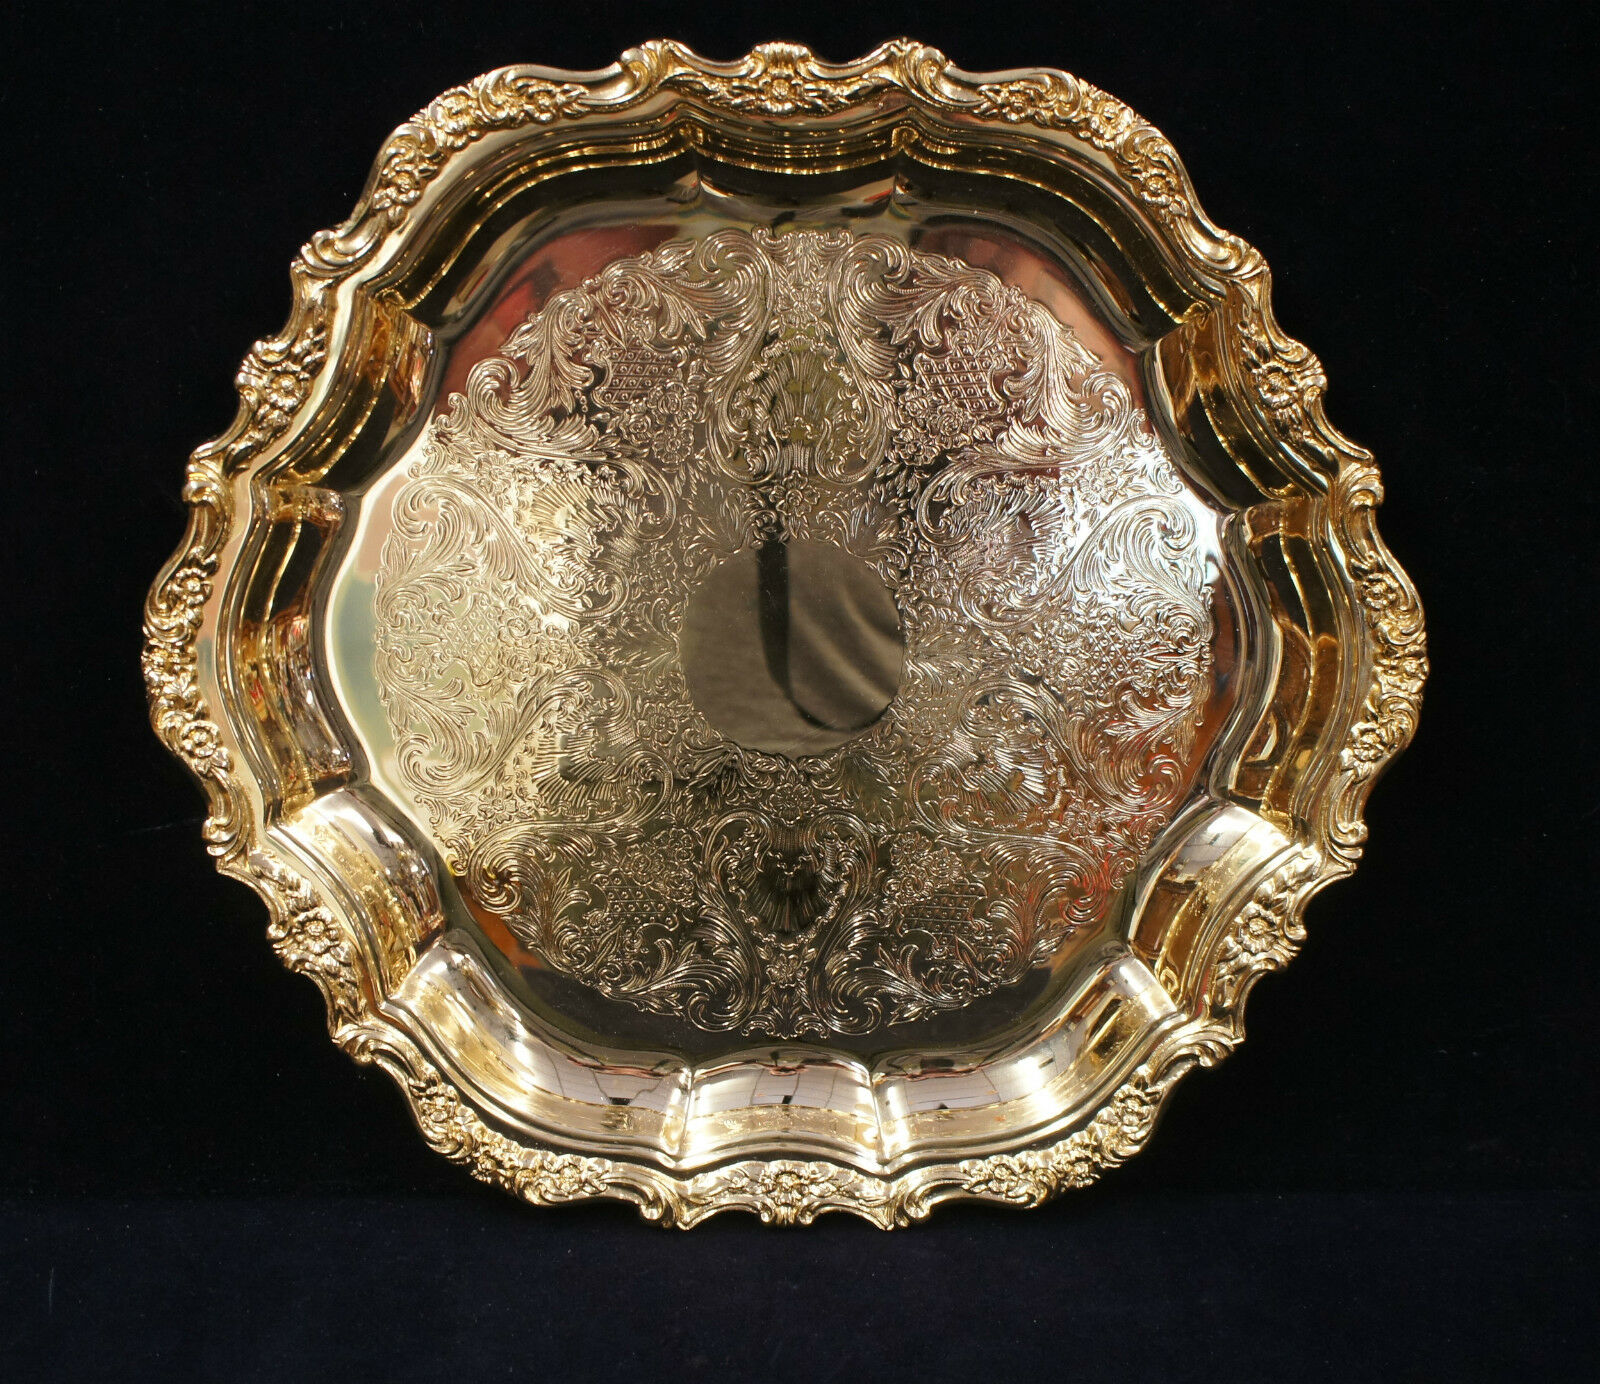 1 Very Fancy Countess International Silver CO Gilded Serving Platter Tray 6271